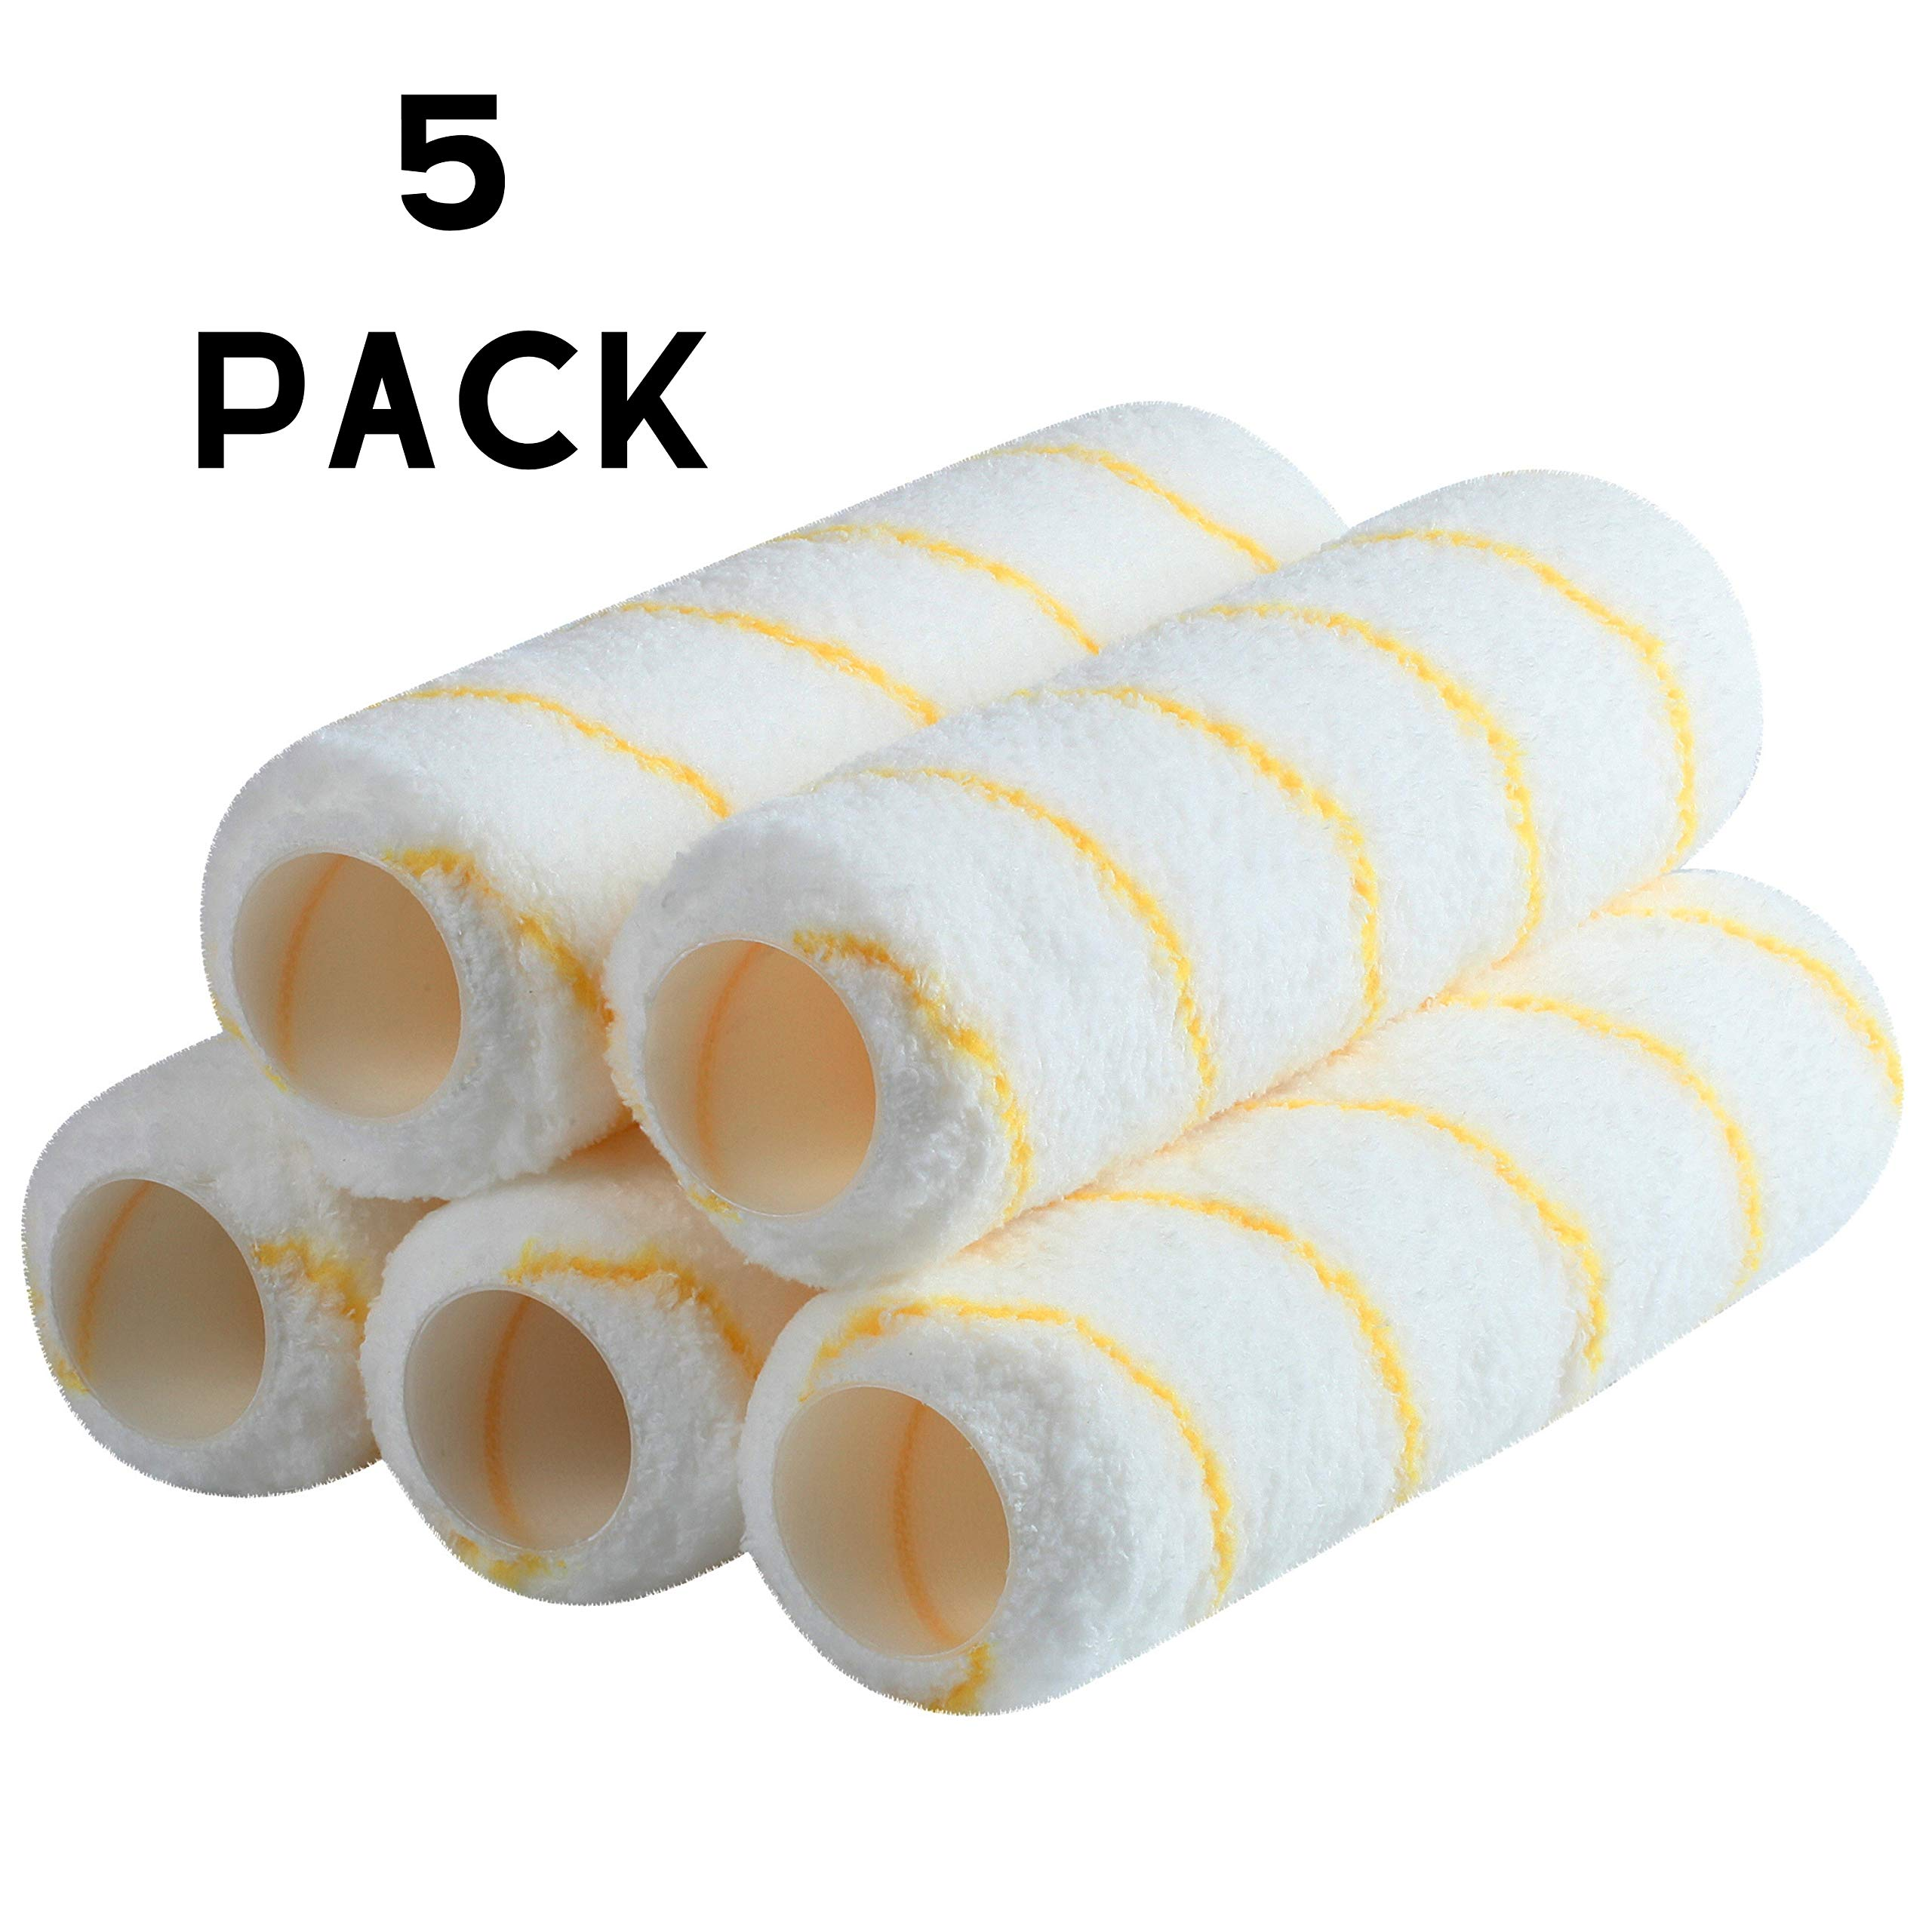 """Bates- Paint Roller Covers, 9"""" Roller Covers, Pack of 5, Covers for Paint Rollers, Naps for Paint Roller Brush, Roller Naps, House Painting Supplies, Nap for Roller Frame, Covers for Paint Roller Kit"""